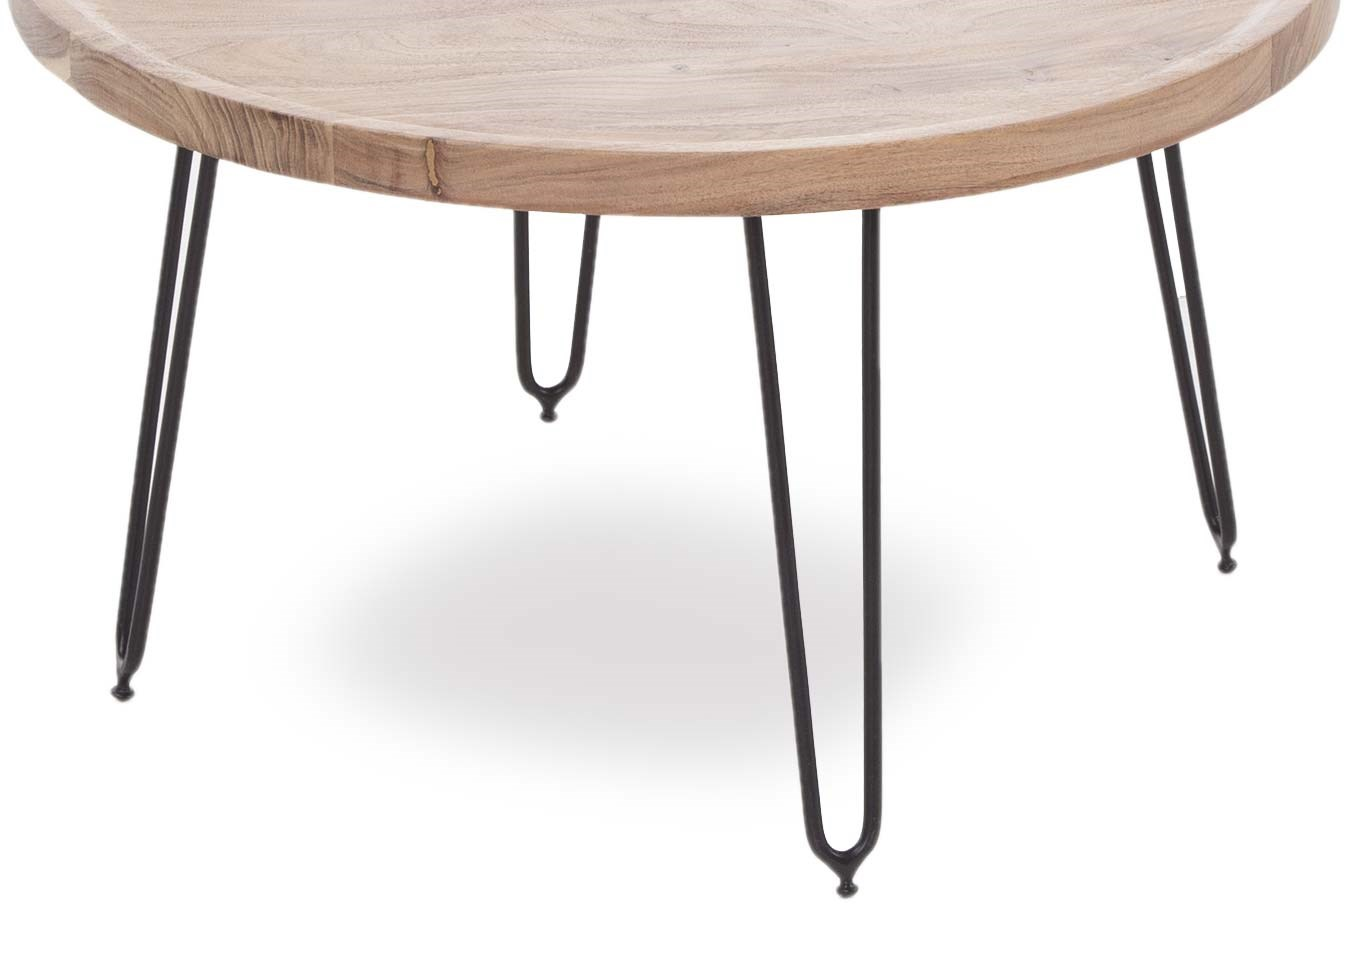 Picture of: Large Round Coffee Table With Black Metal Legs Crete Ez Living Furniture